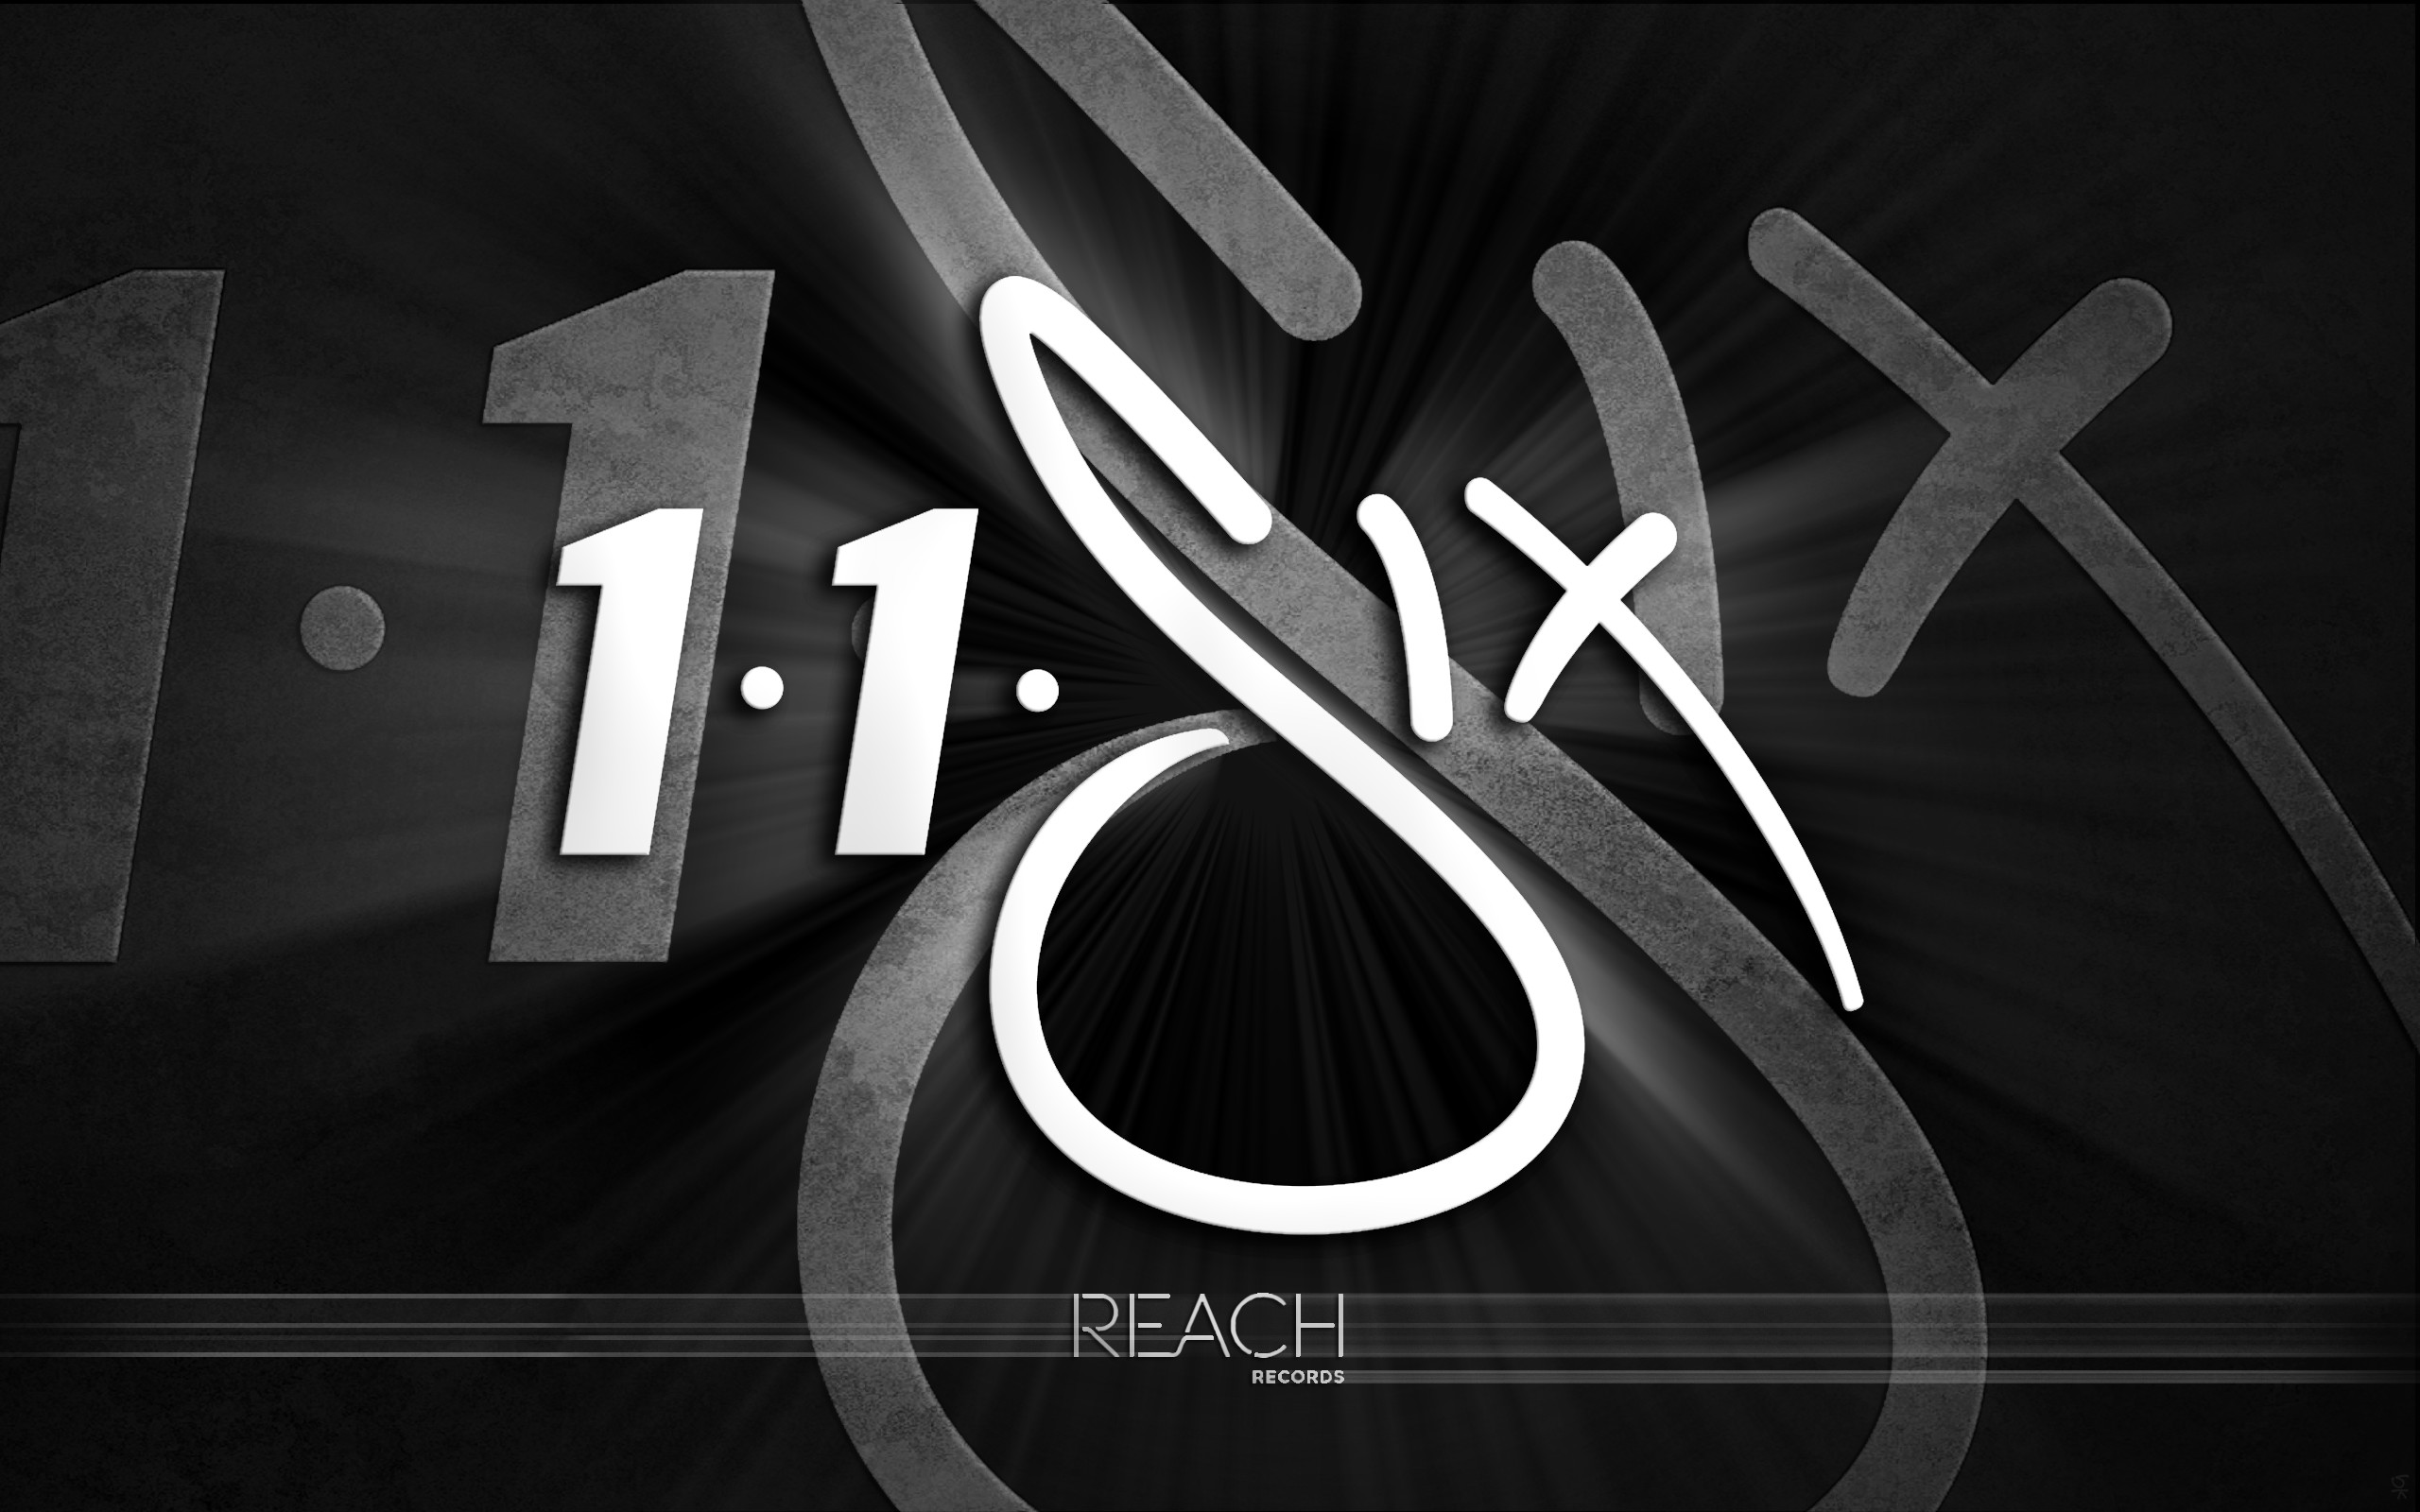 Reach Records Wallpaper 116 Clique Desktop Wal...